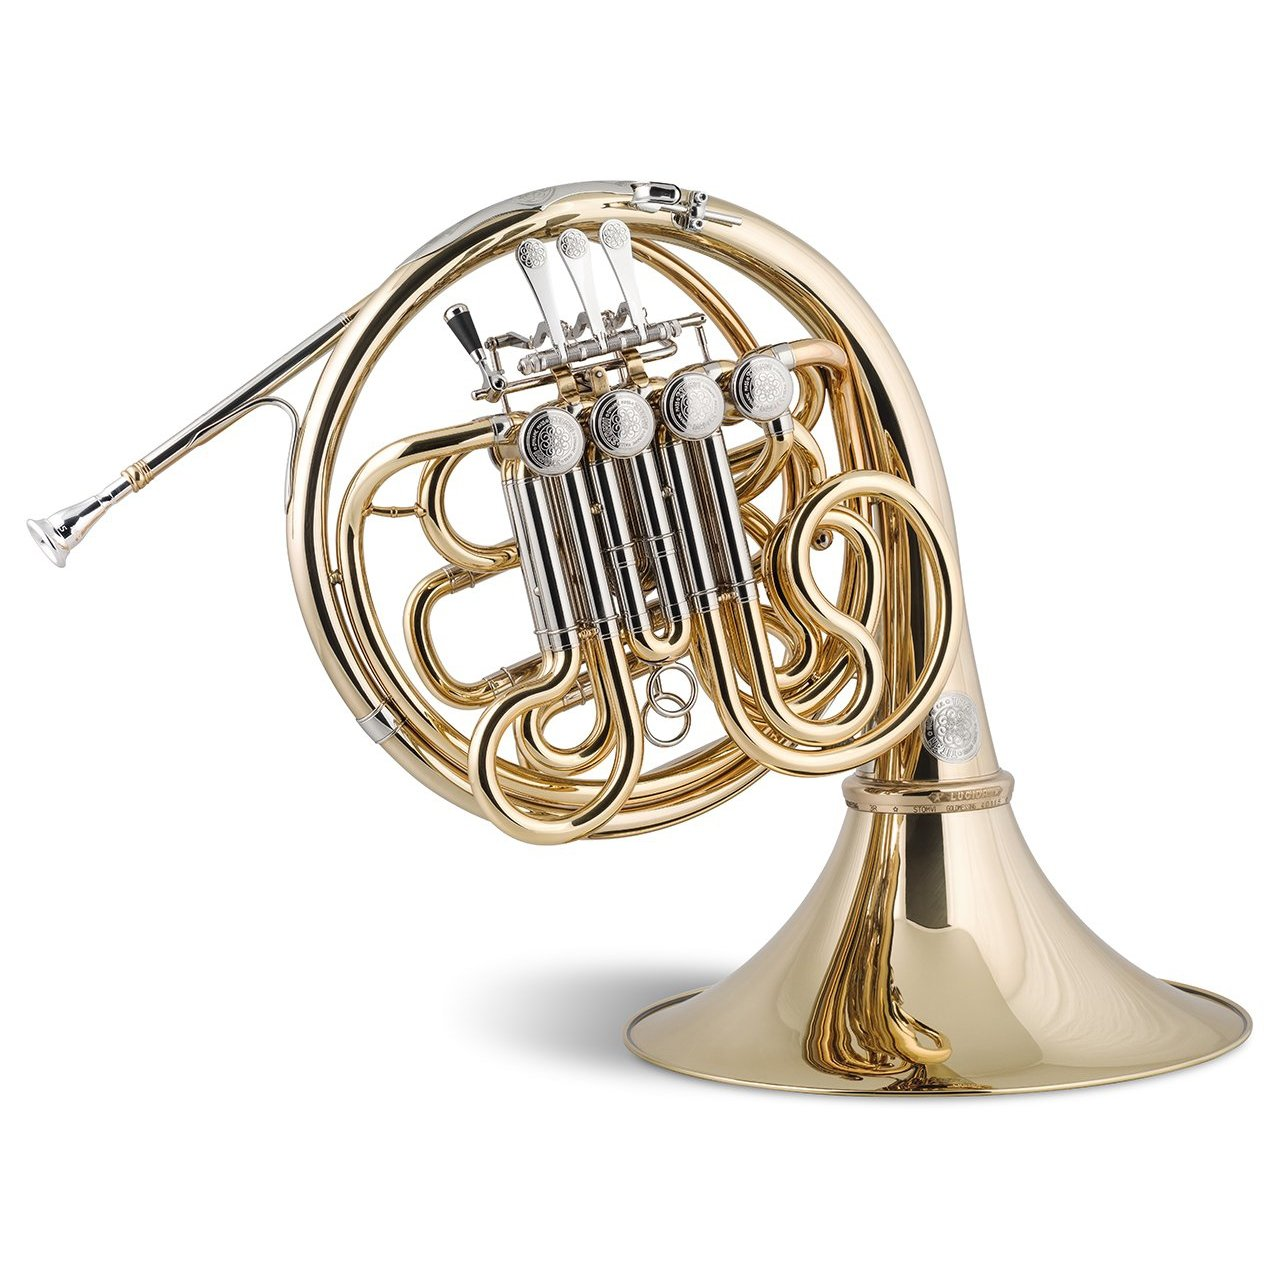 Stomvi - Titán SEIS Bb/F Double Bellflex French Horns (Geyer System)-French Horn-Stomvi-Music Elements